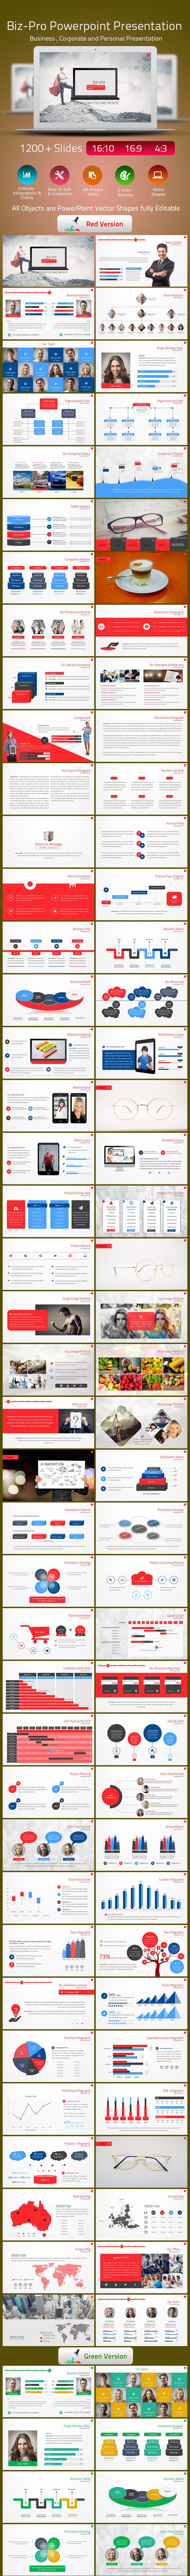 Biz-Pro Power Point Presentation - PowerPoint Templates Presentation Templates